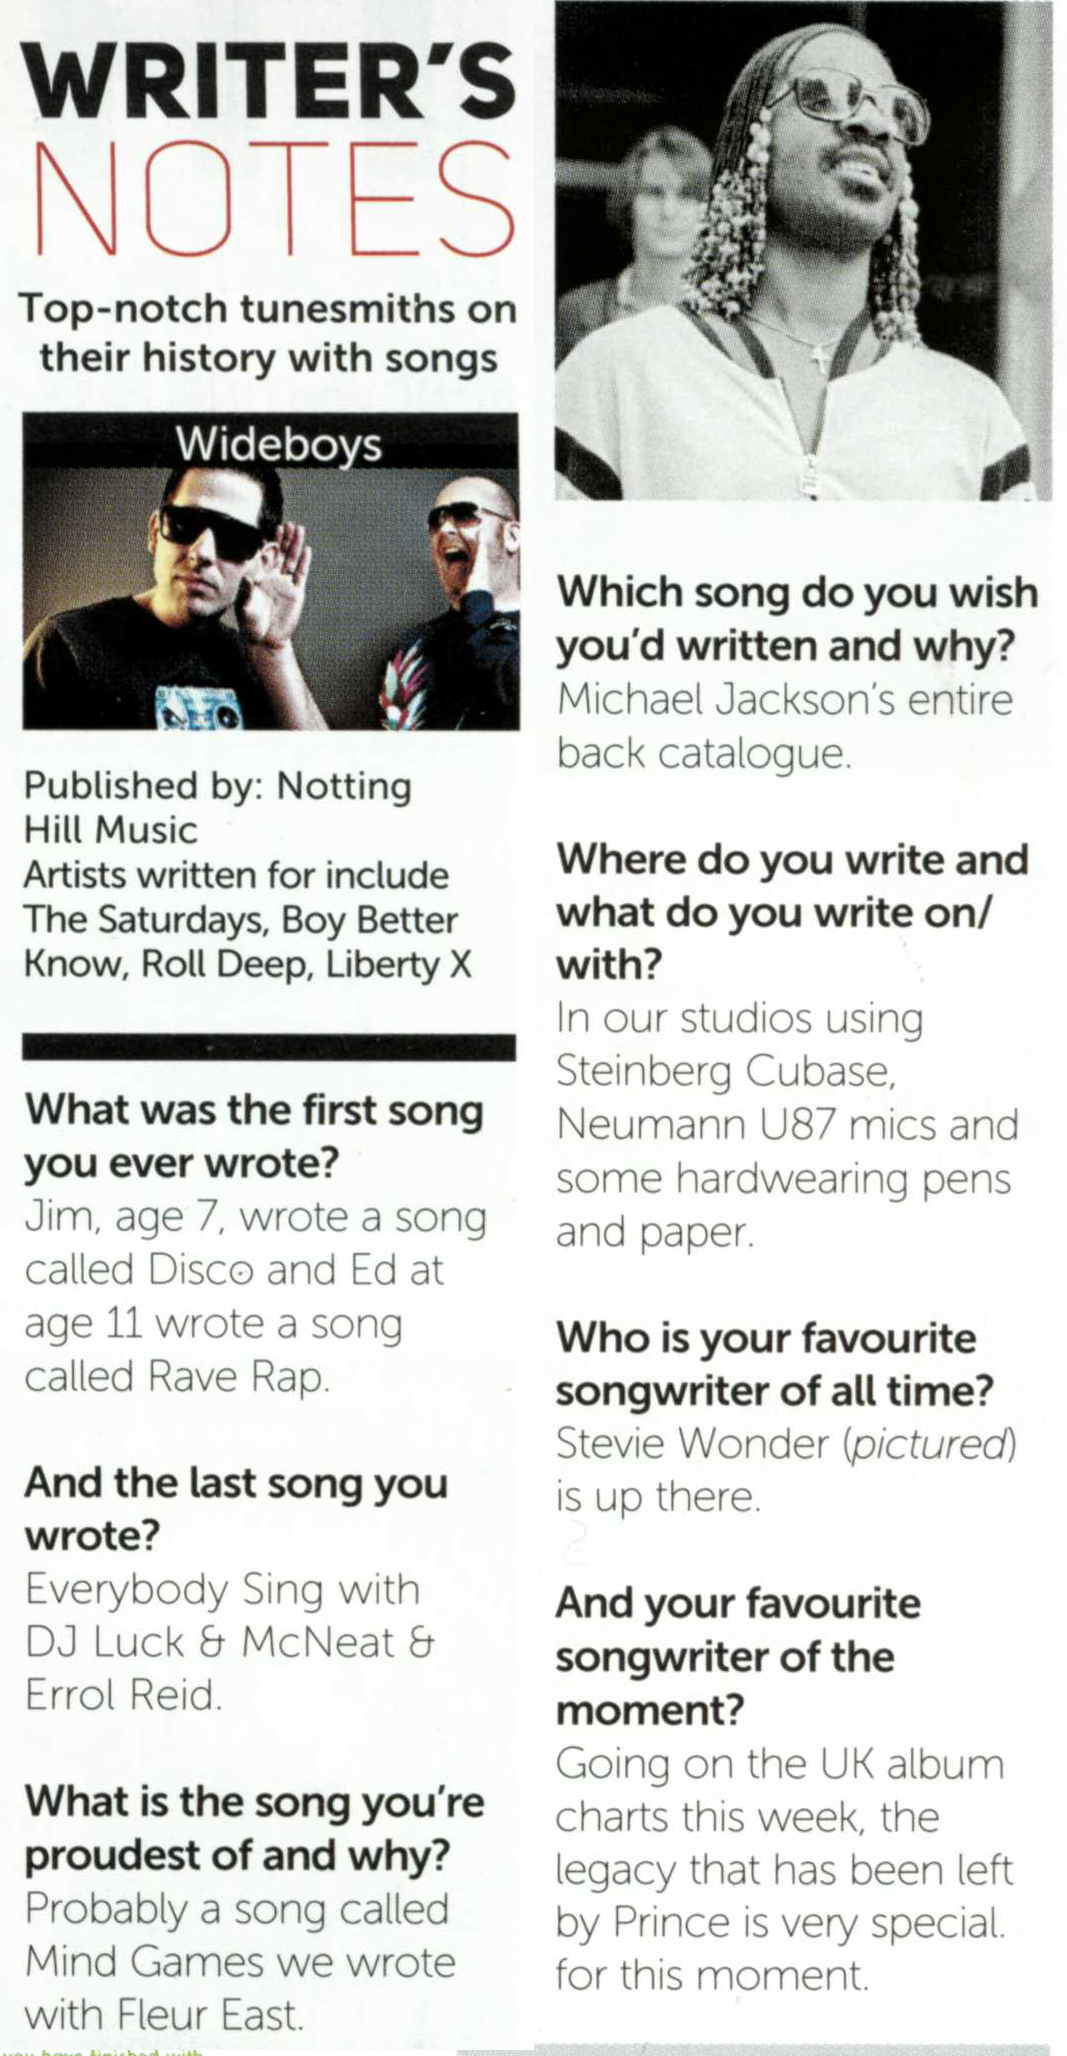 The Wideboys featured in Music Week's 'Writer's Notes'